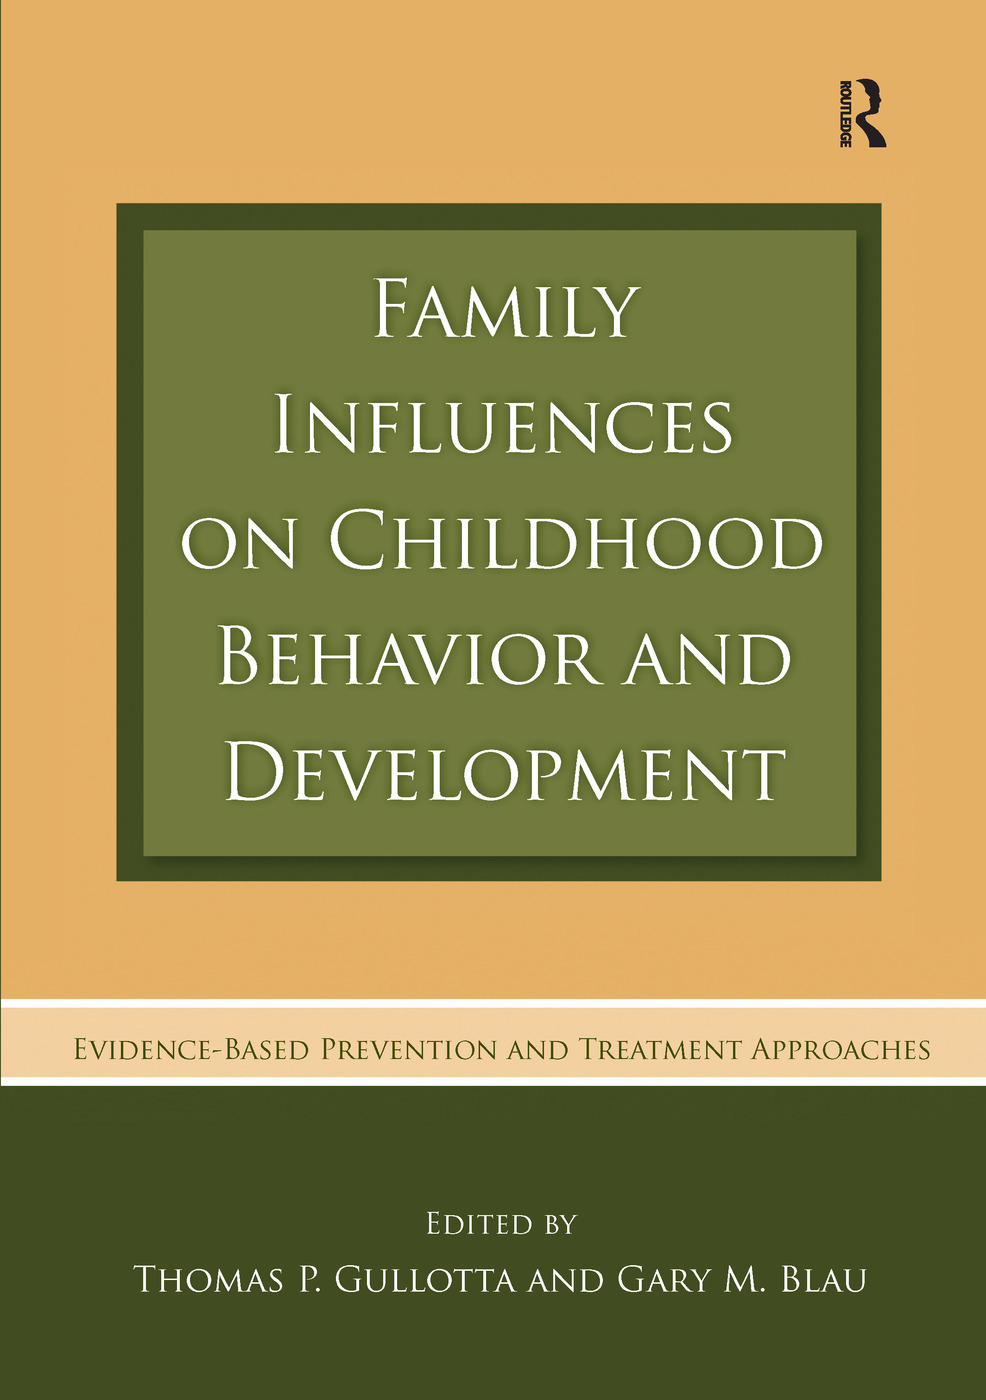 Family Influences on Childhood Behavior and Development: Evidence-Based Prevention and Treatment Approaches book cover